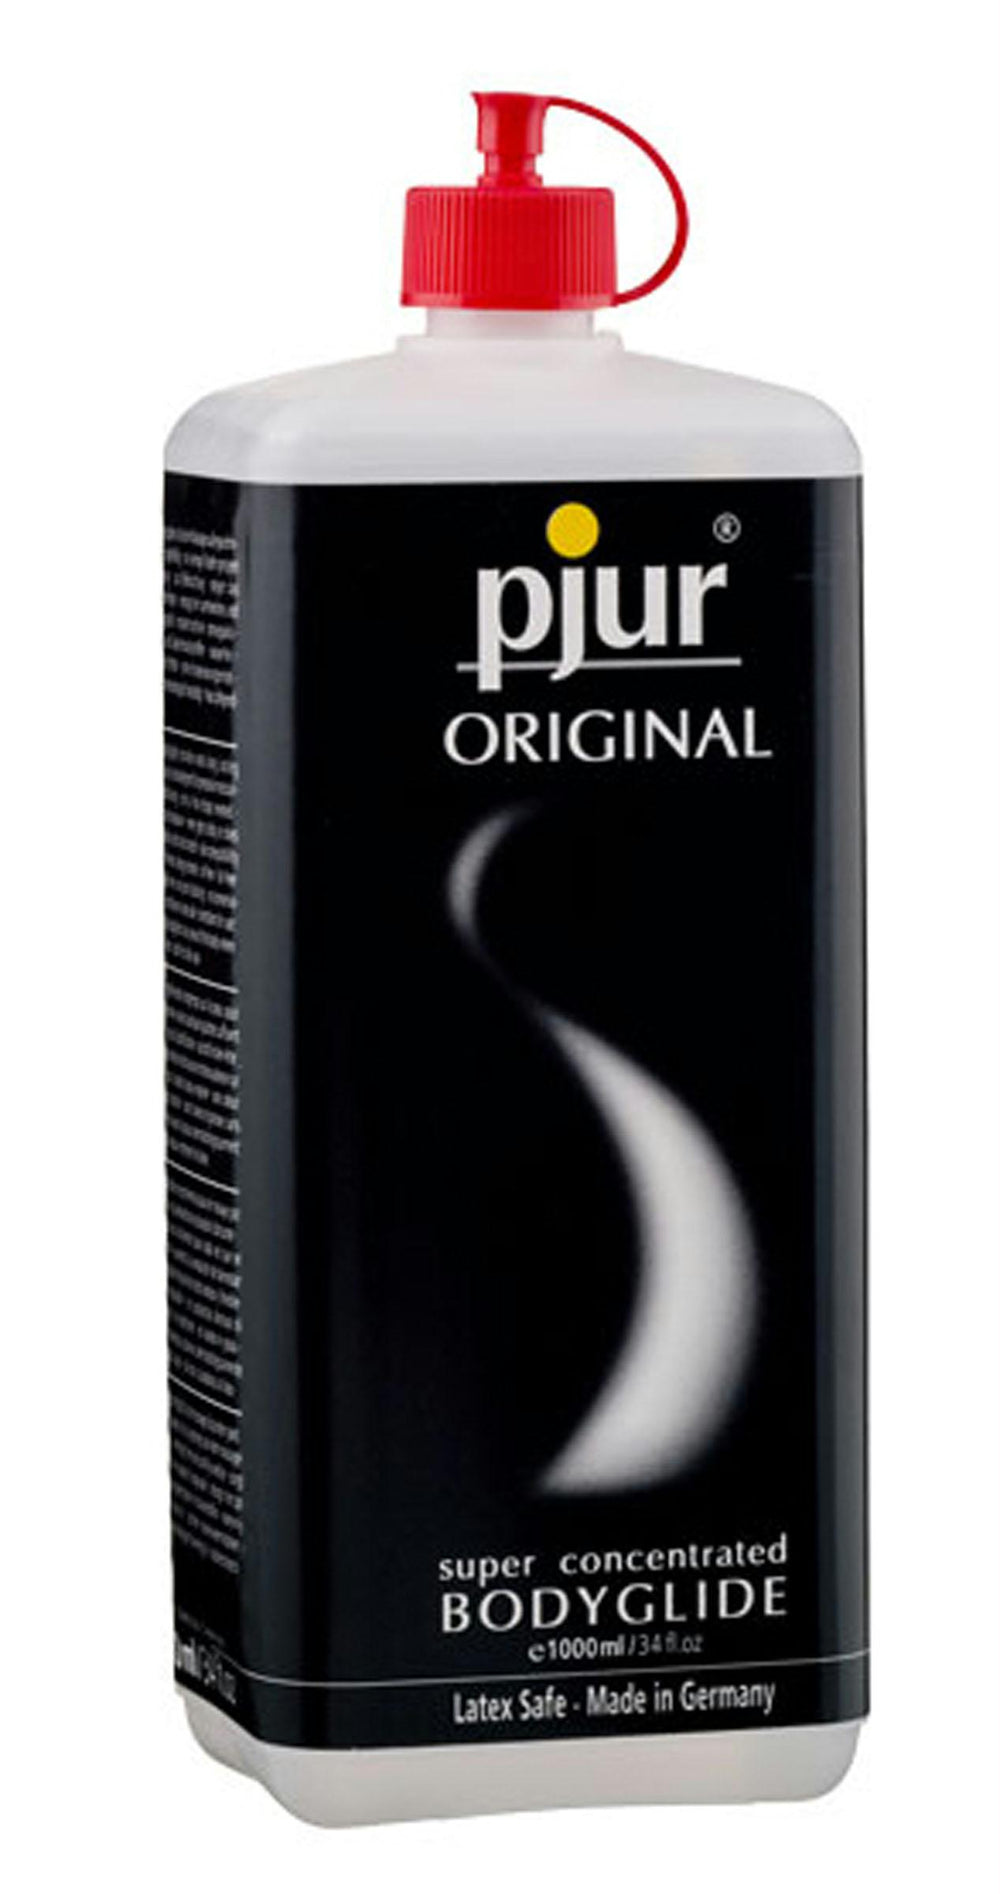 Pjur Original - Fun and Kinky Sex Toys